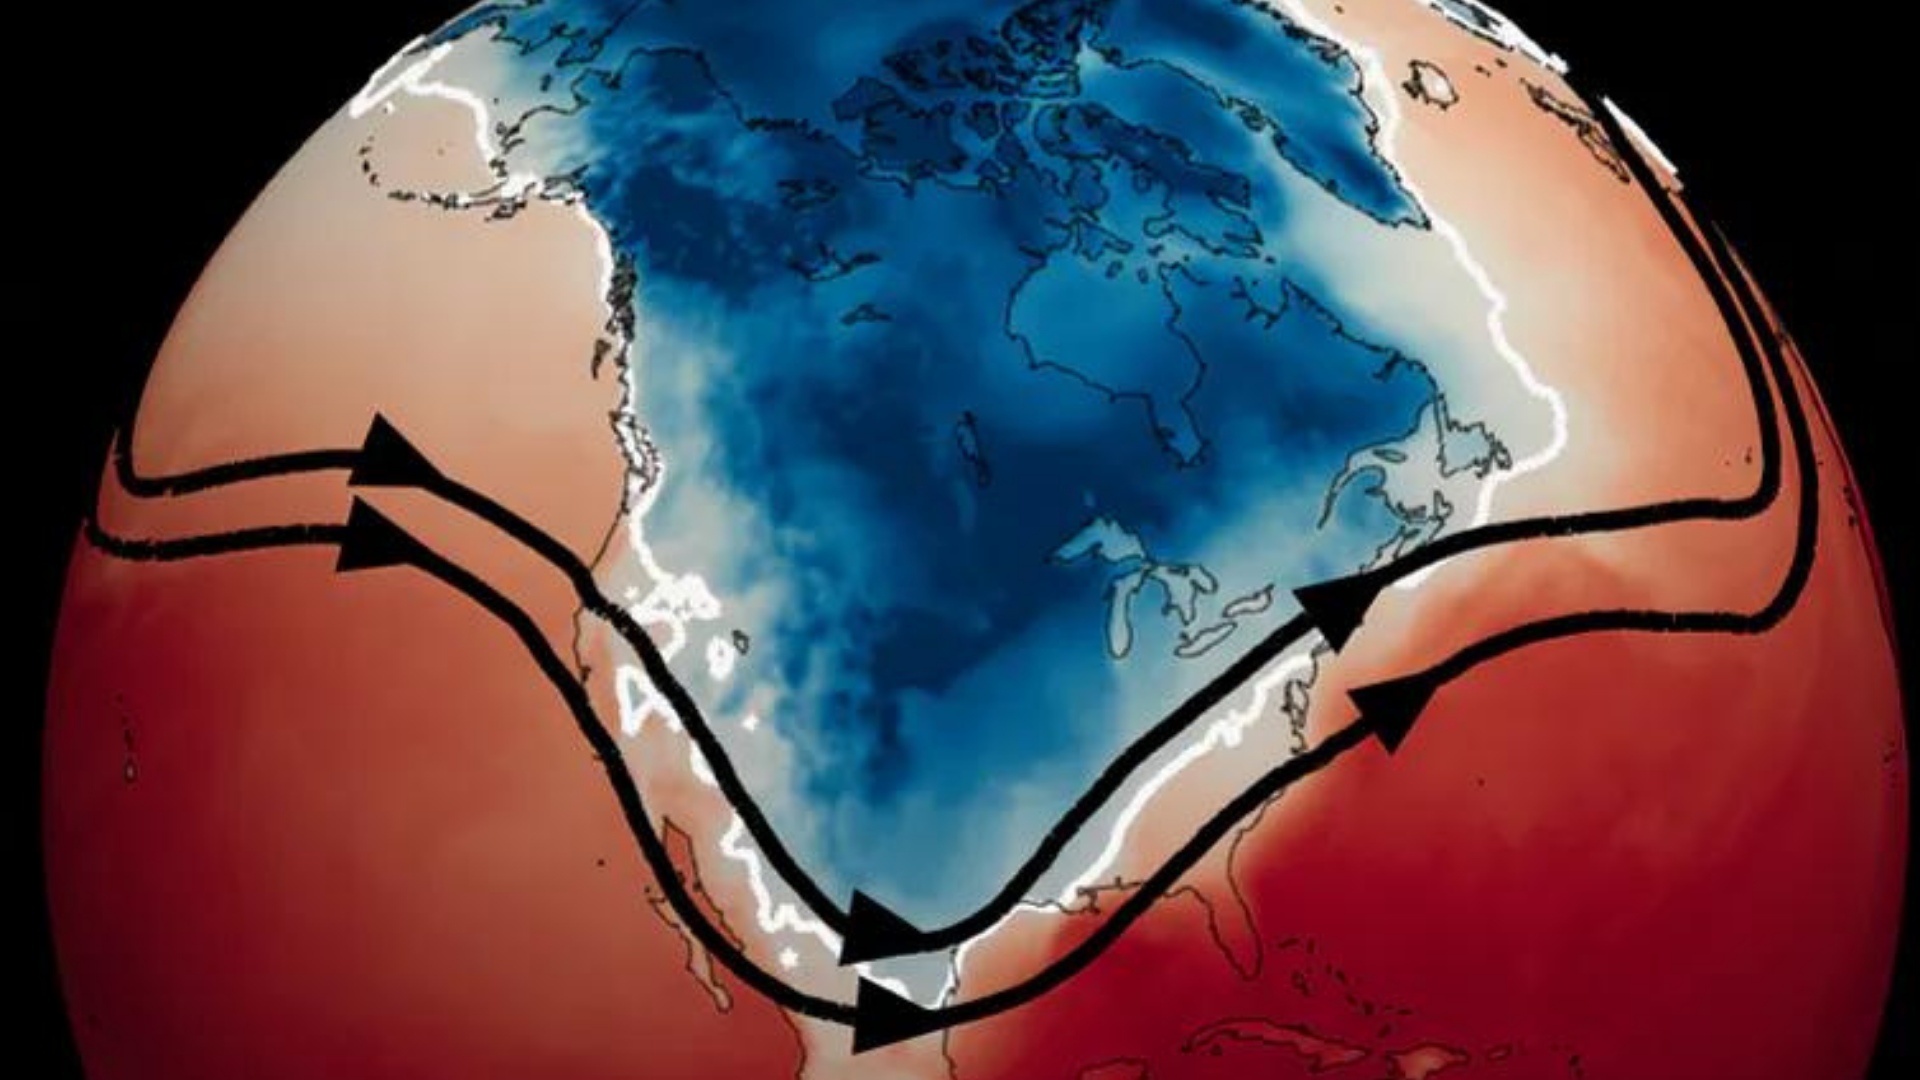 Surface temperatures on Feb. 15, 2021, at 6 a.m. in Texas. The black lines show the jet stream, and the white line indicates the extent of freezing temperatures. Mathew Barlow/University of Massachusetts Lowell, CC BY-ND